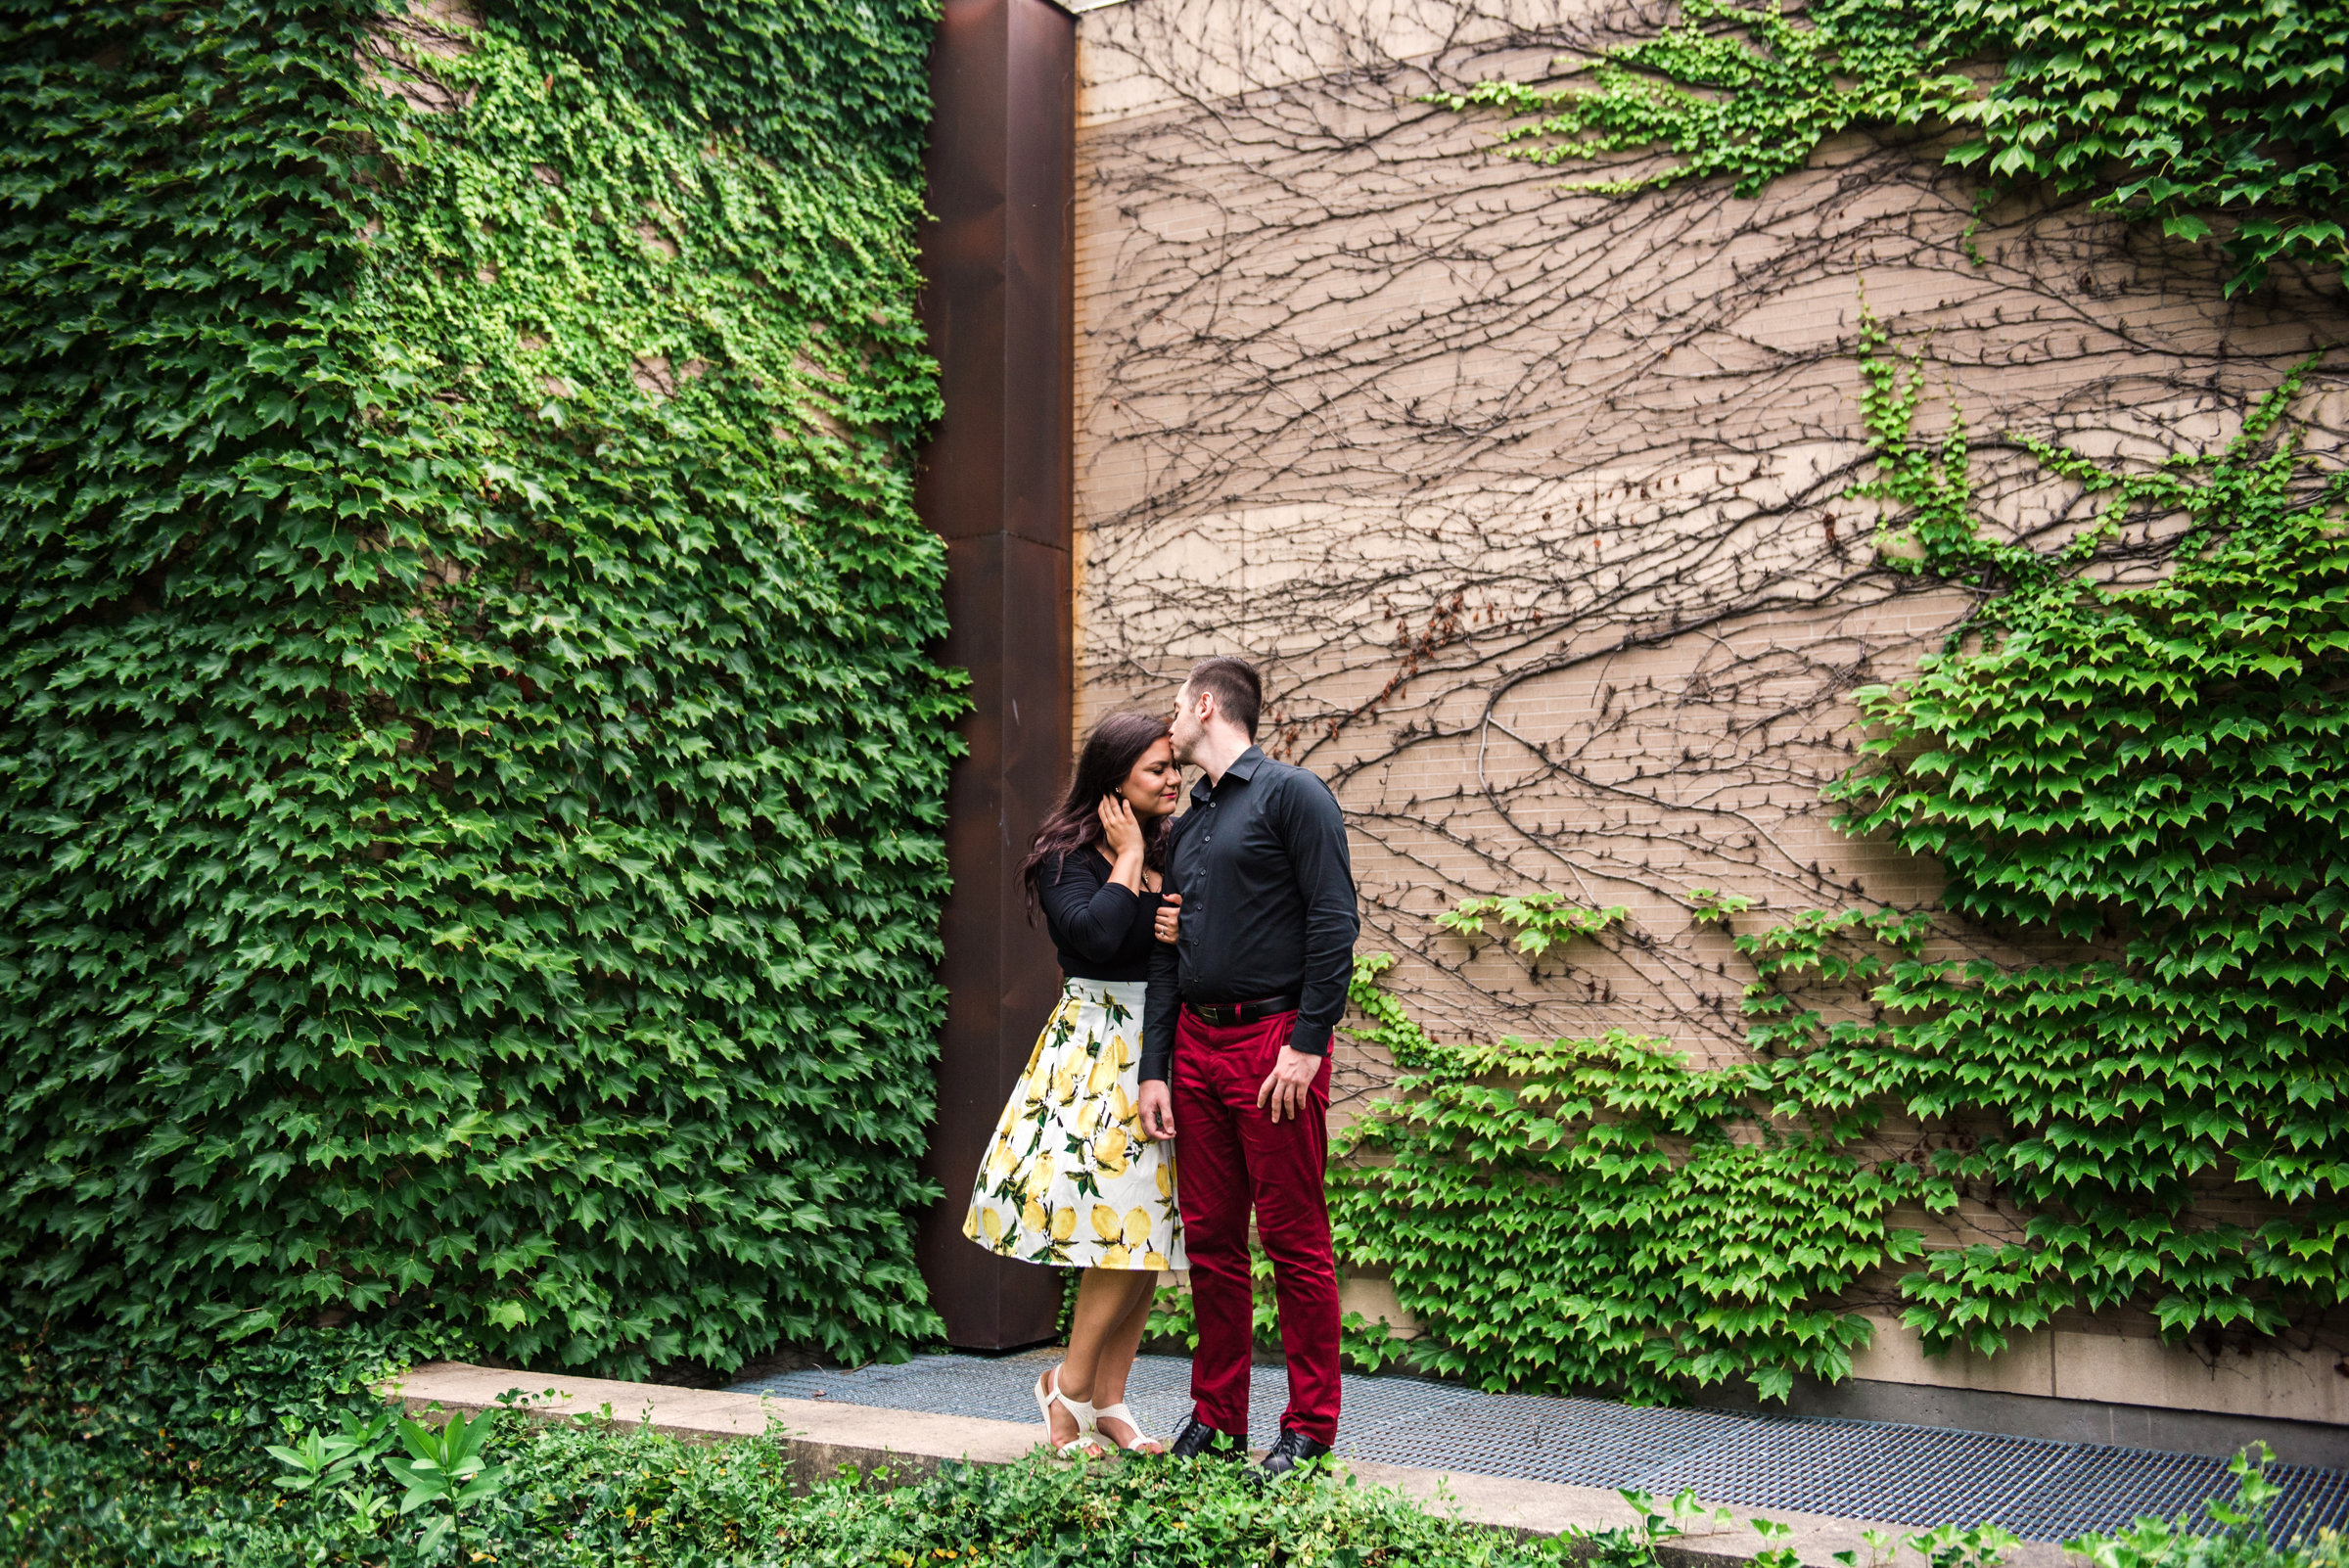 George_Eastman_House_Rochester_Engagement_Session_JILL_STUDIO_Rochester_NY_Photographer_DSC_6500.jpg